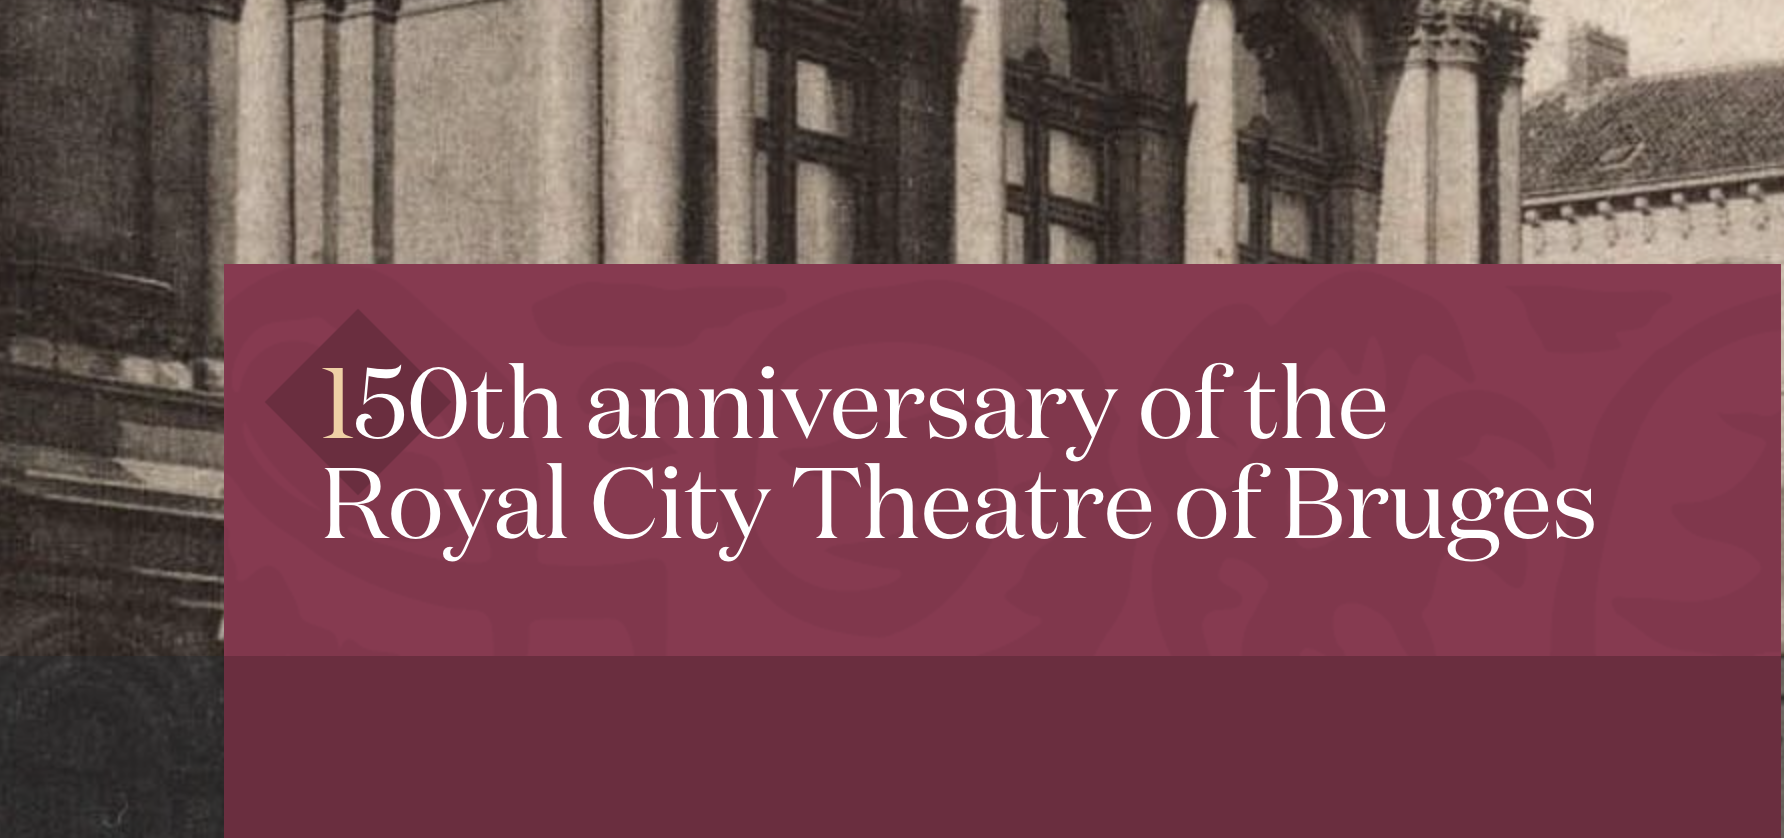 150th anniversary of the Royal City Theatre of Bruges